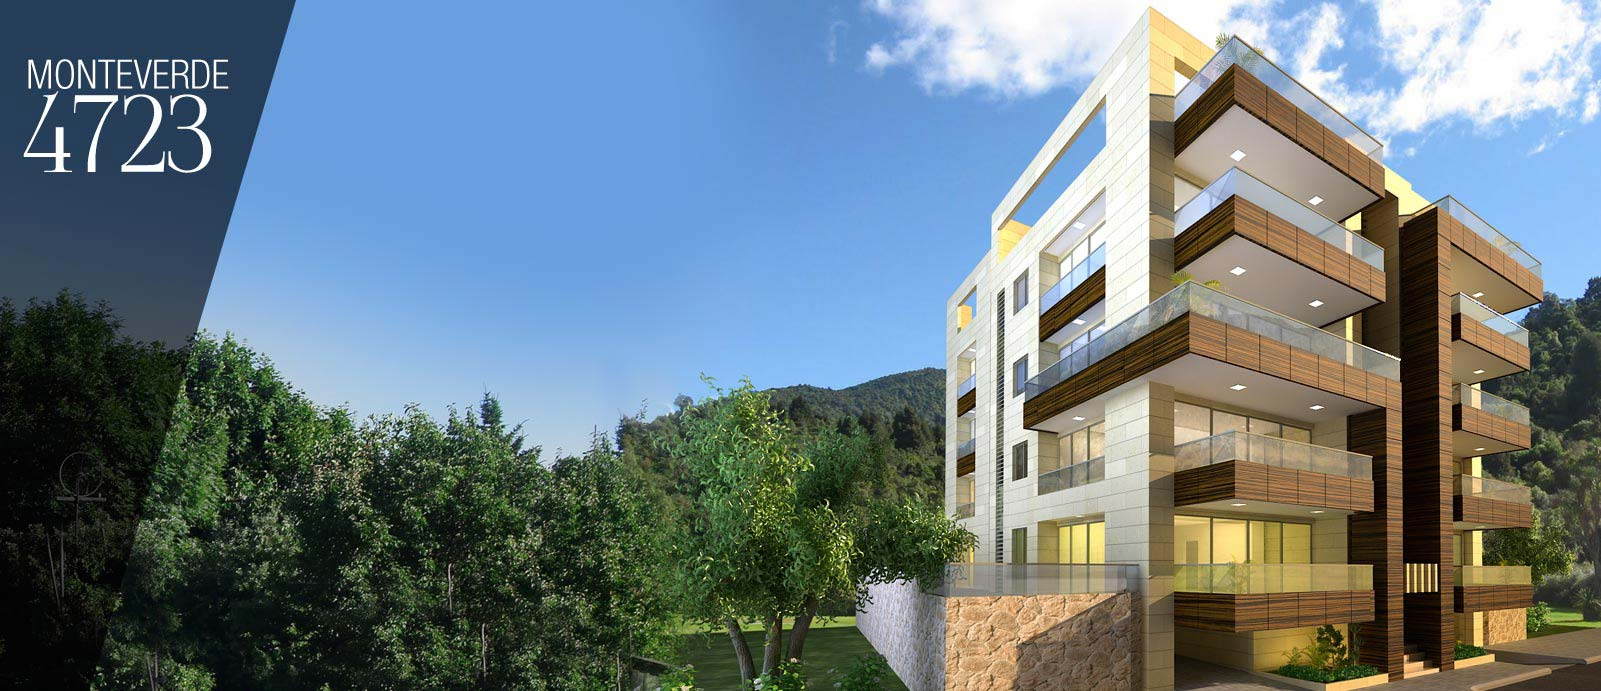 Apartments for sale in Monteverde MCP 4723